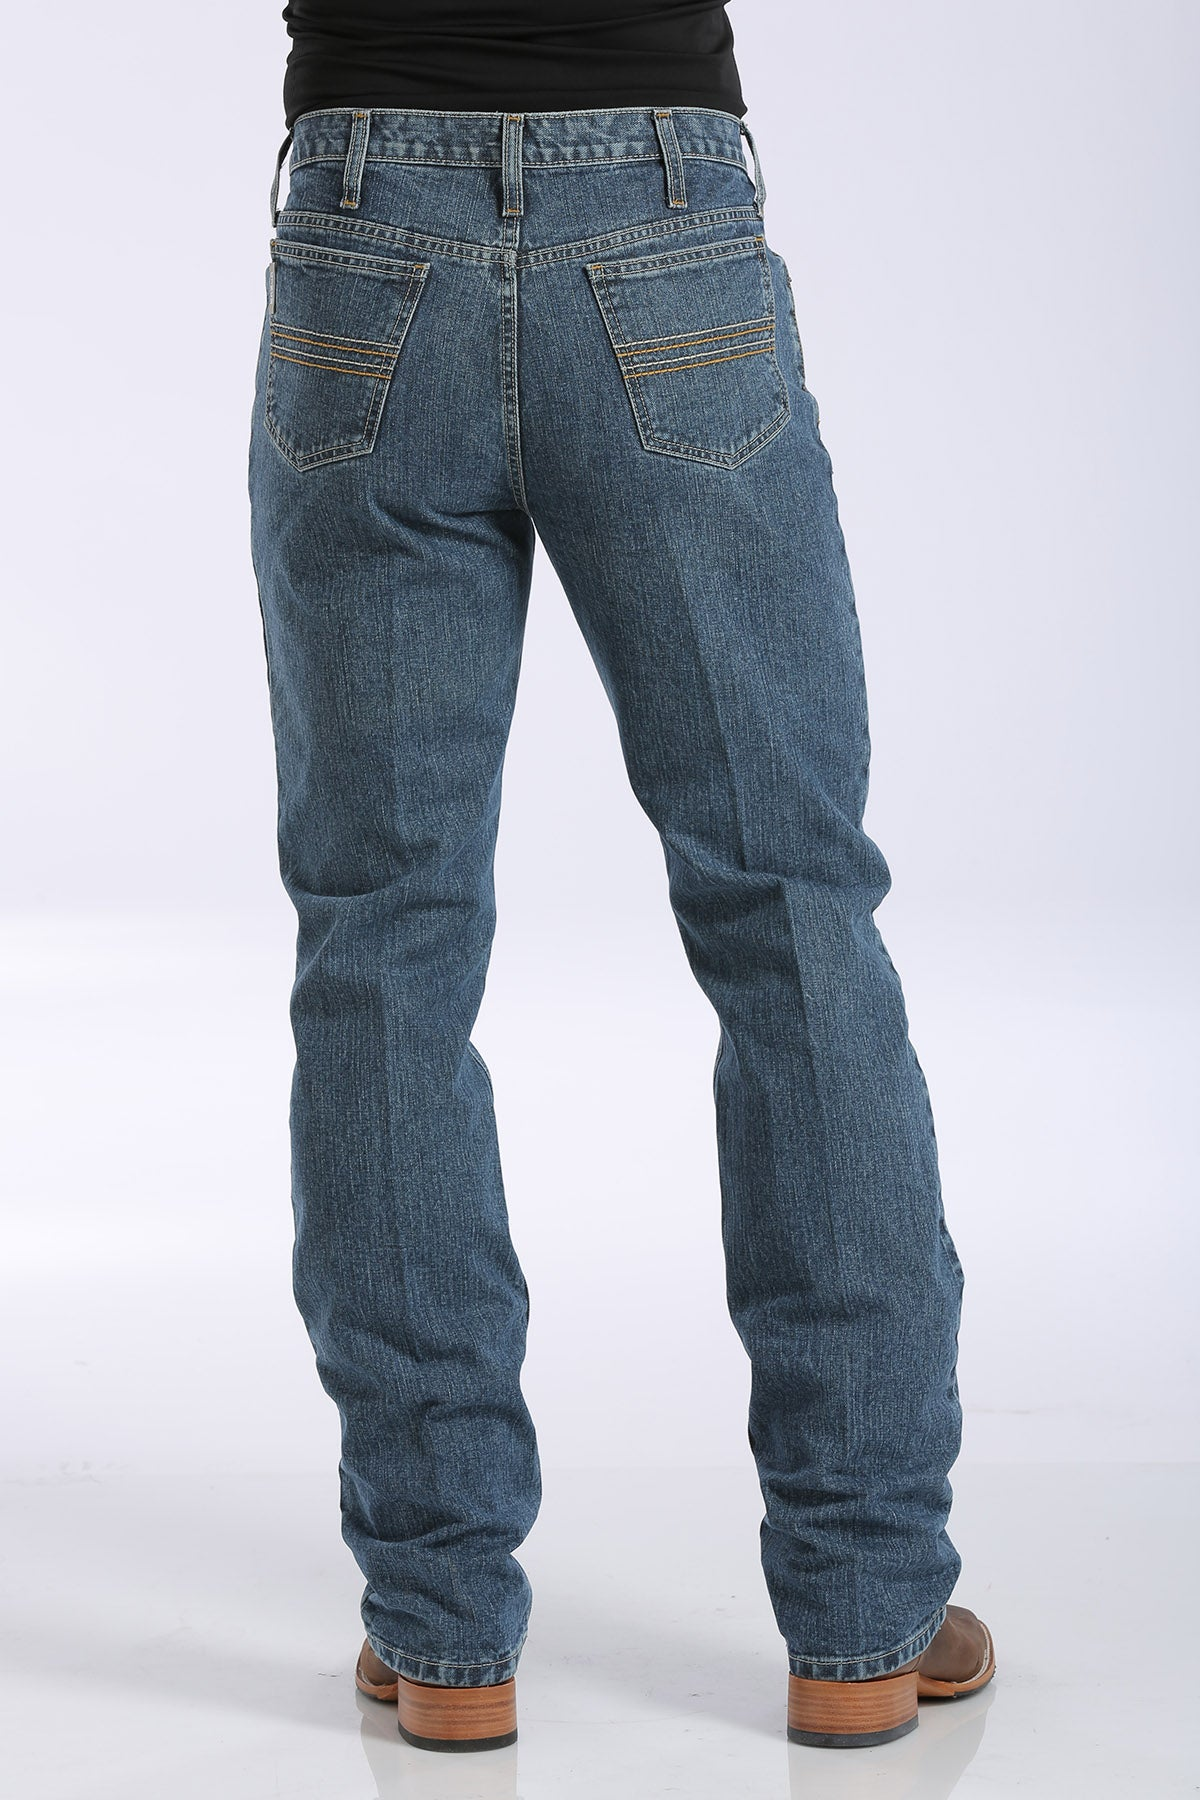 CINCH Men's Slim Fit Silver Label Jean - Medium Stonewash